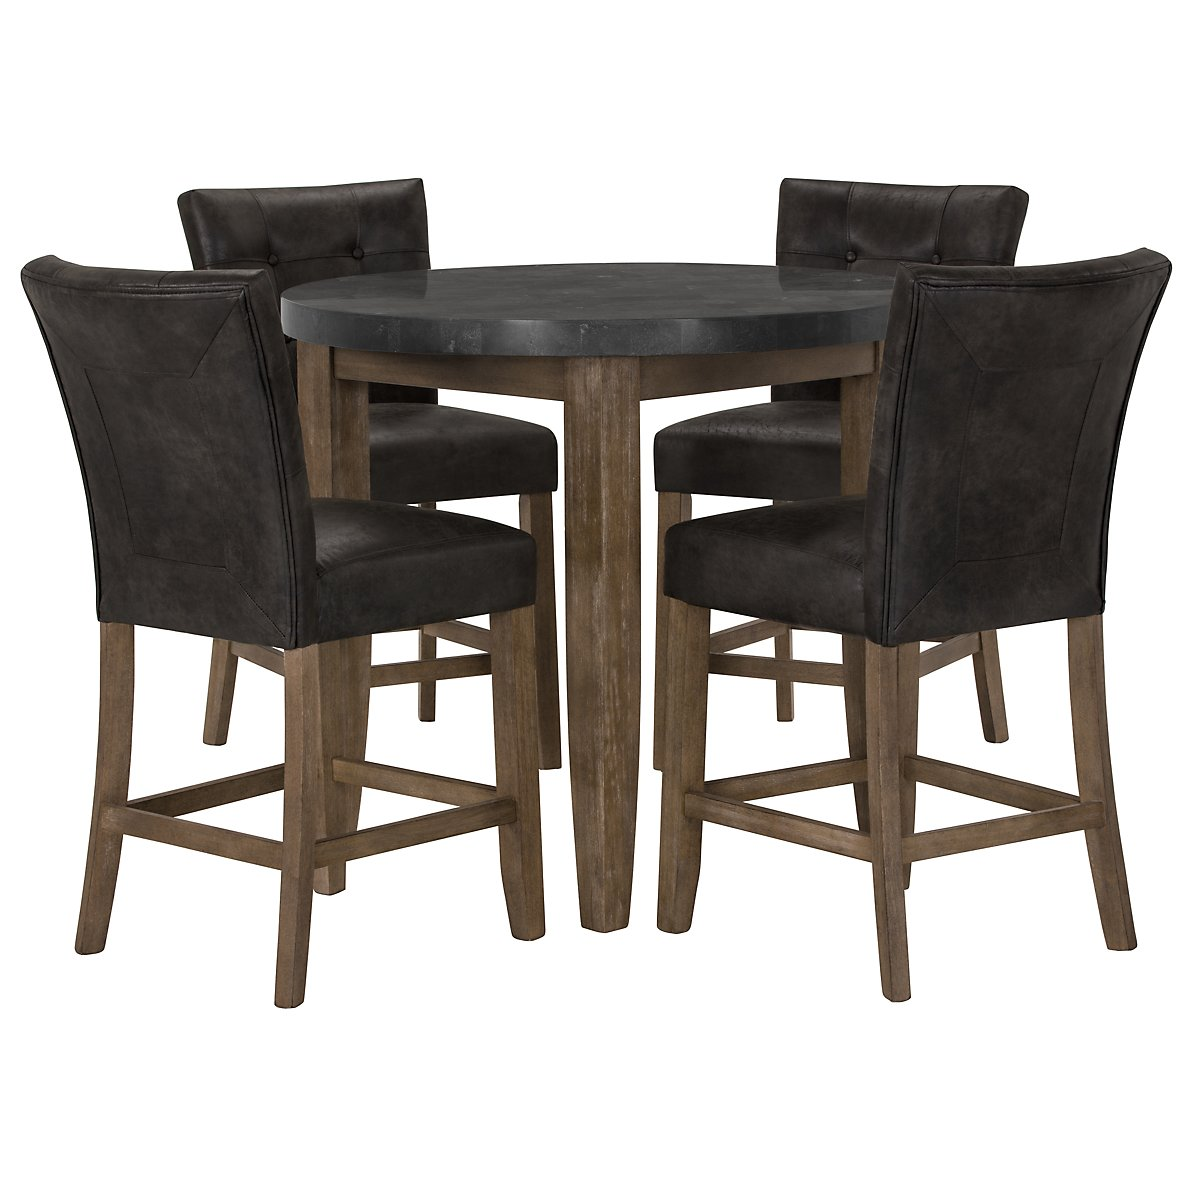 Emmett Gray Stone High Dining Table & 2 Upholstered Barstools